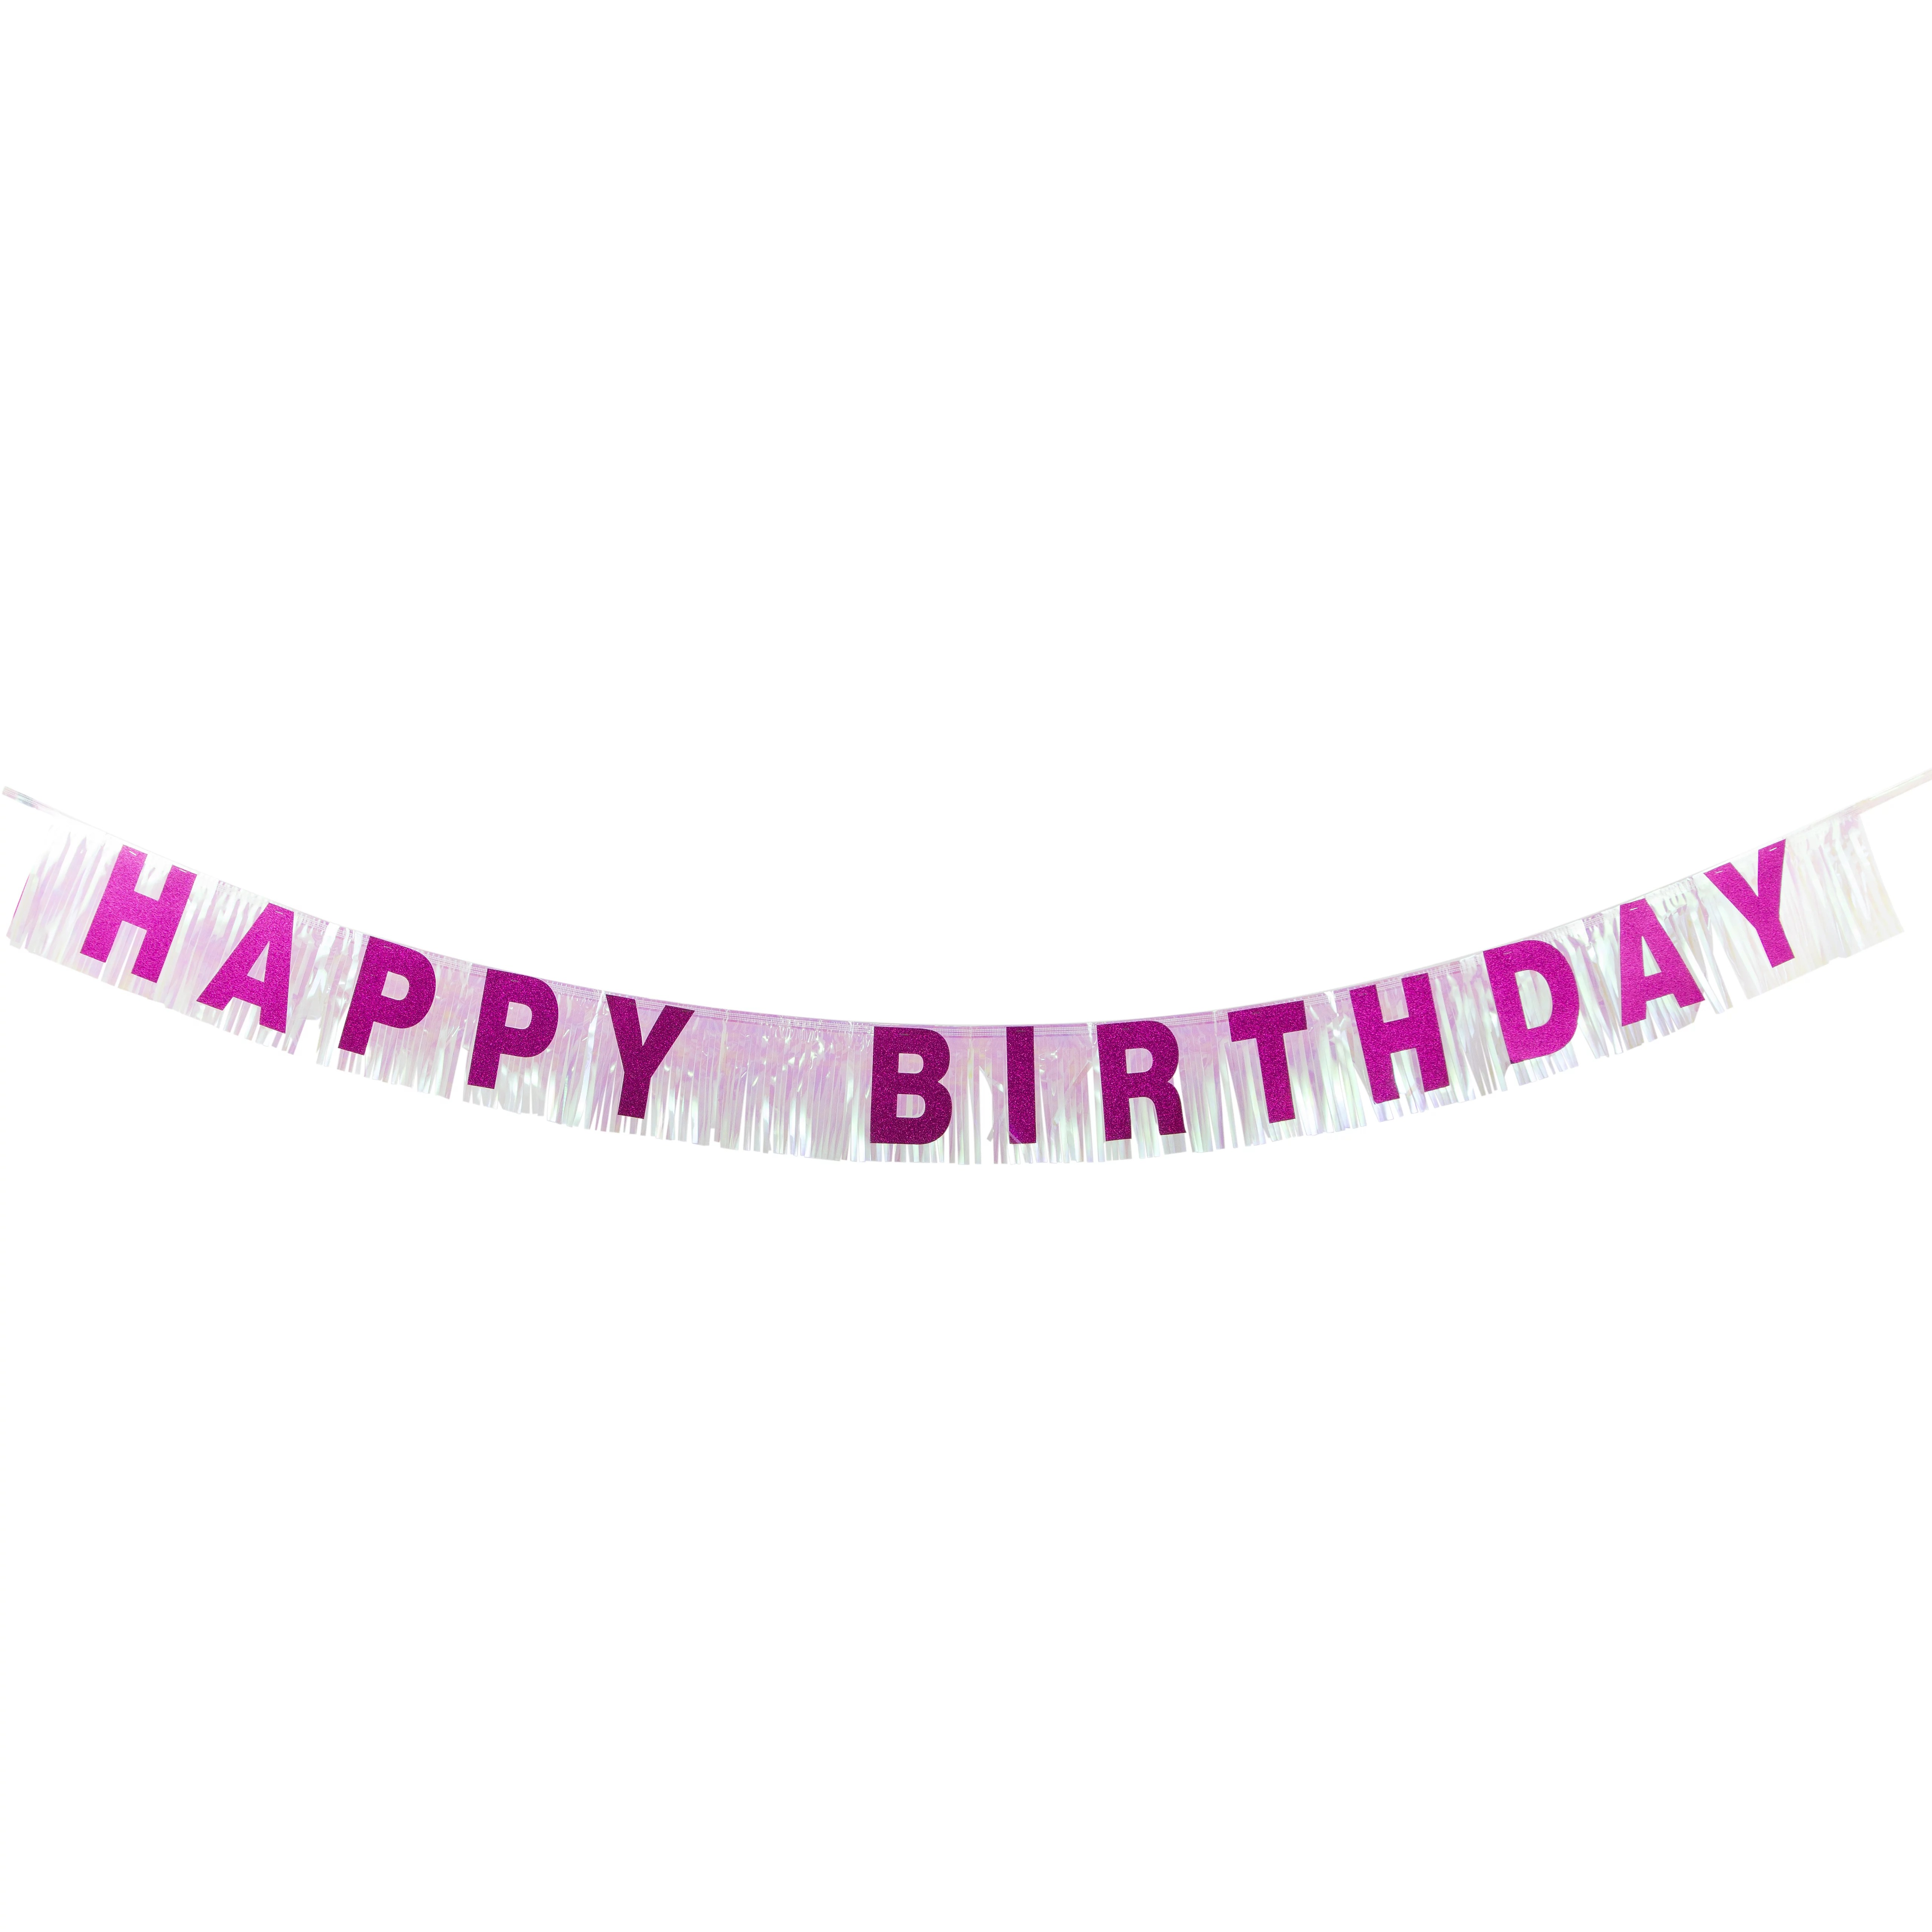 Way To Celebrate Foil Fringe Pink Happy Birthday Party Banner 6 25in X 7ft 1ct Walmart Com Walmart Com